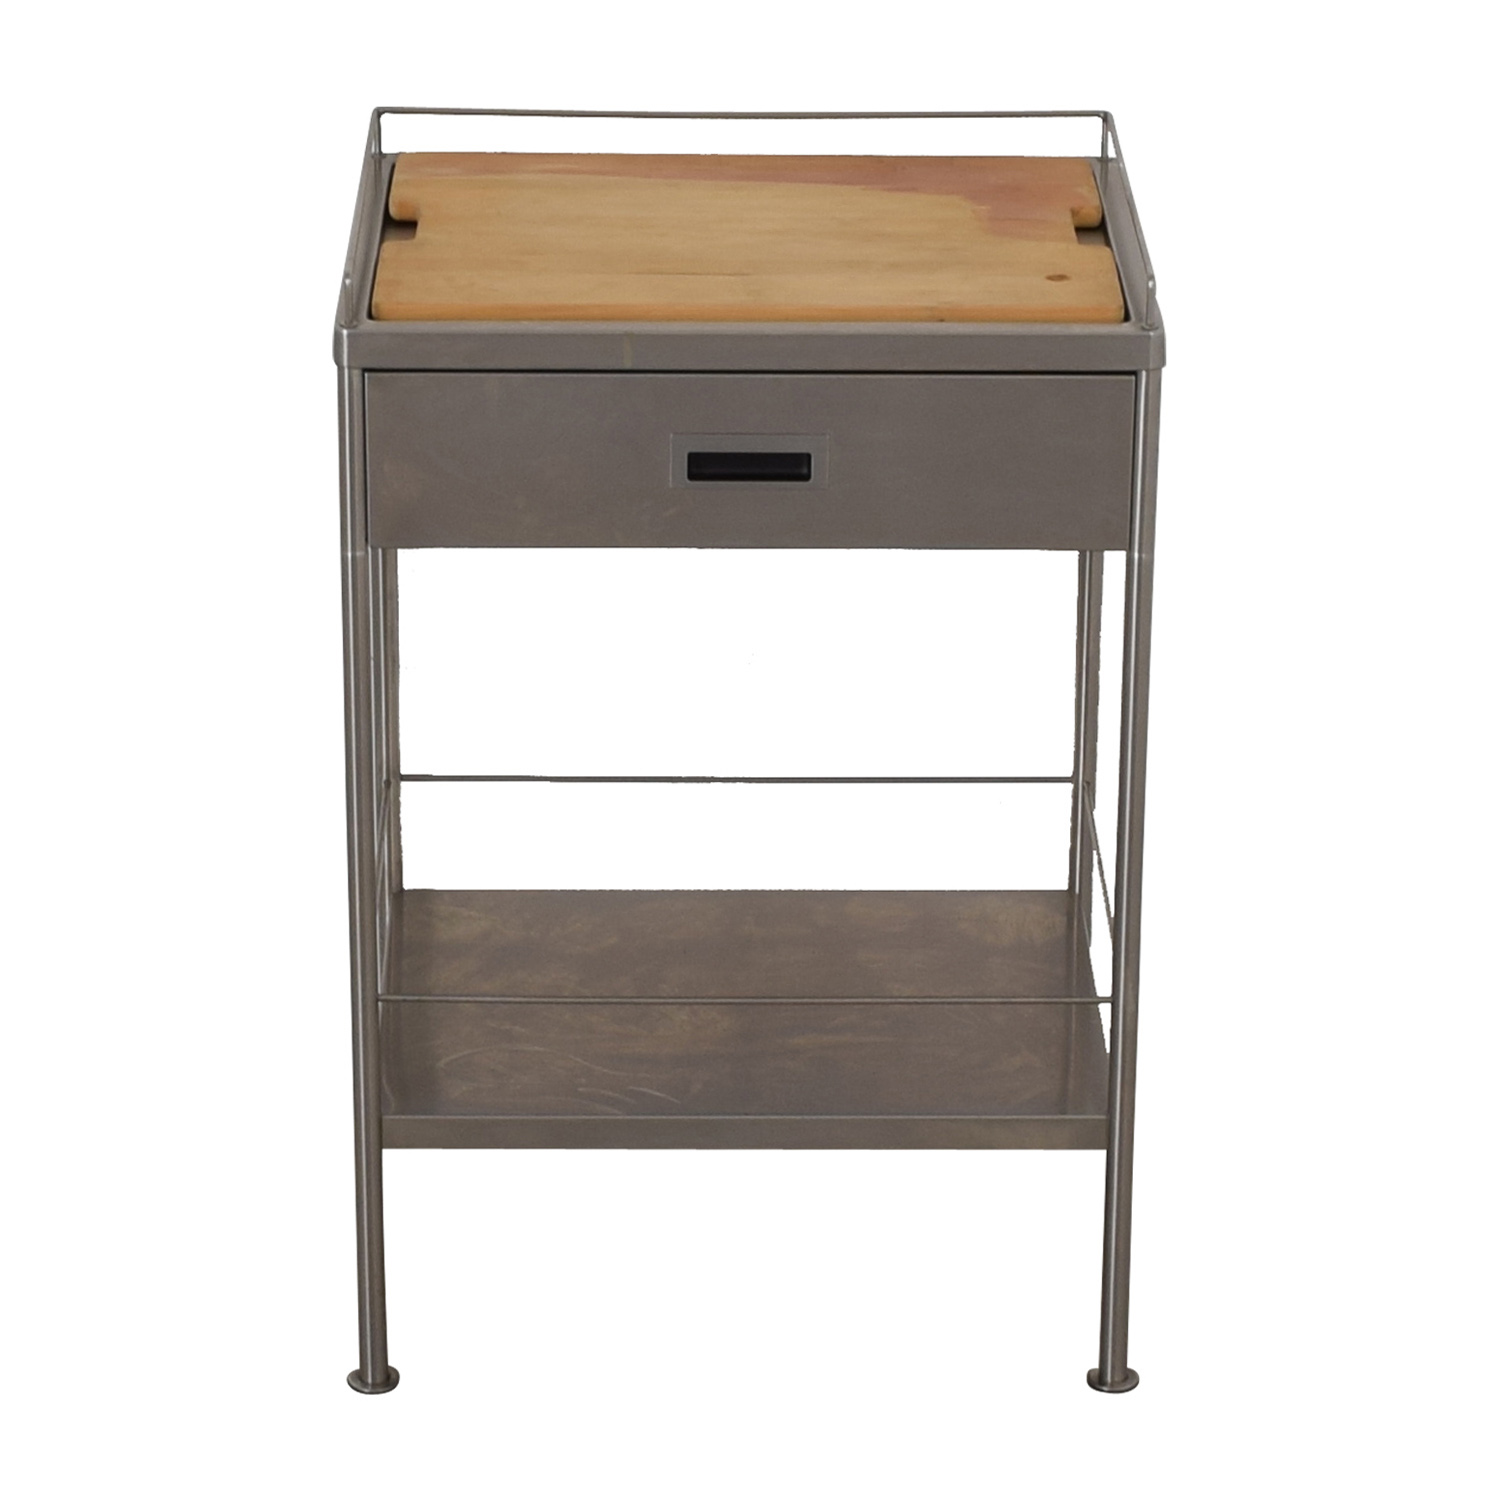 Metal Chef's Single Drawer Table Cart with Cutting Board